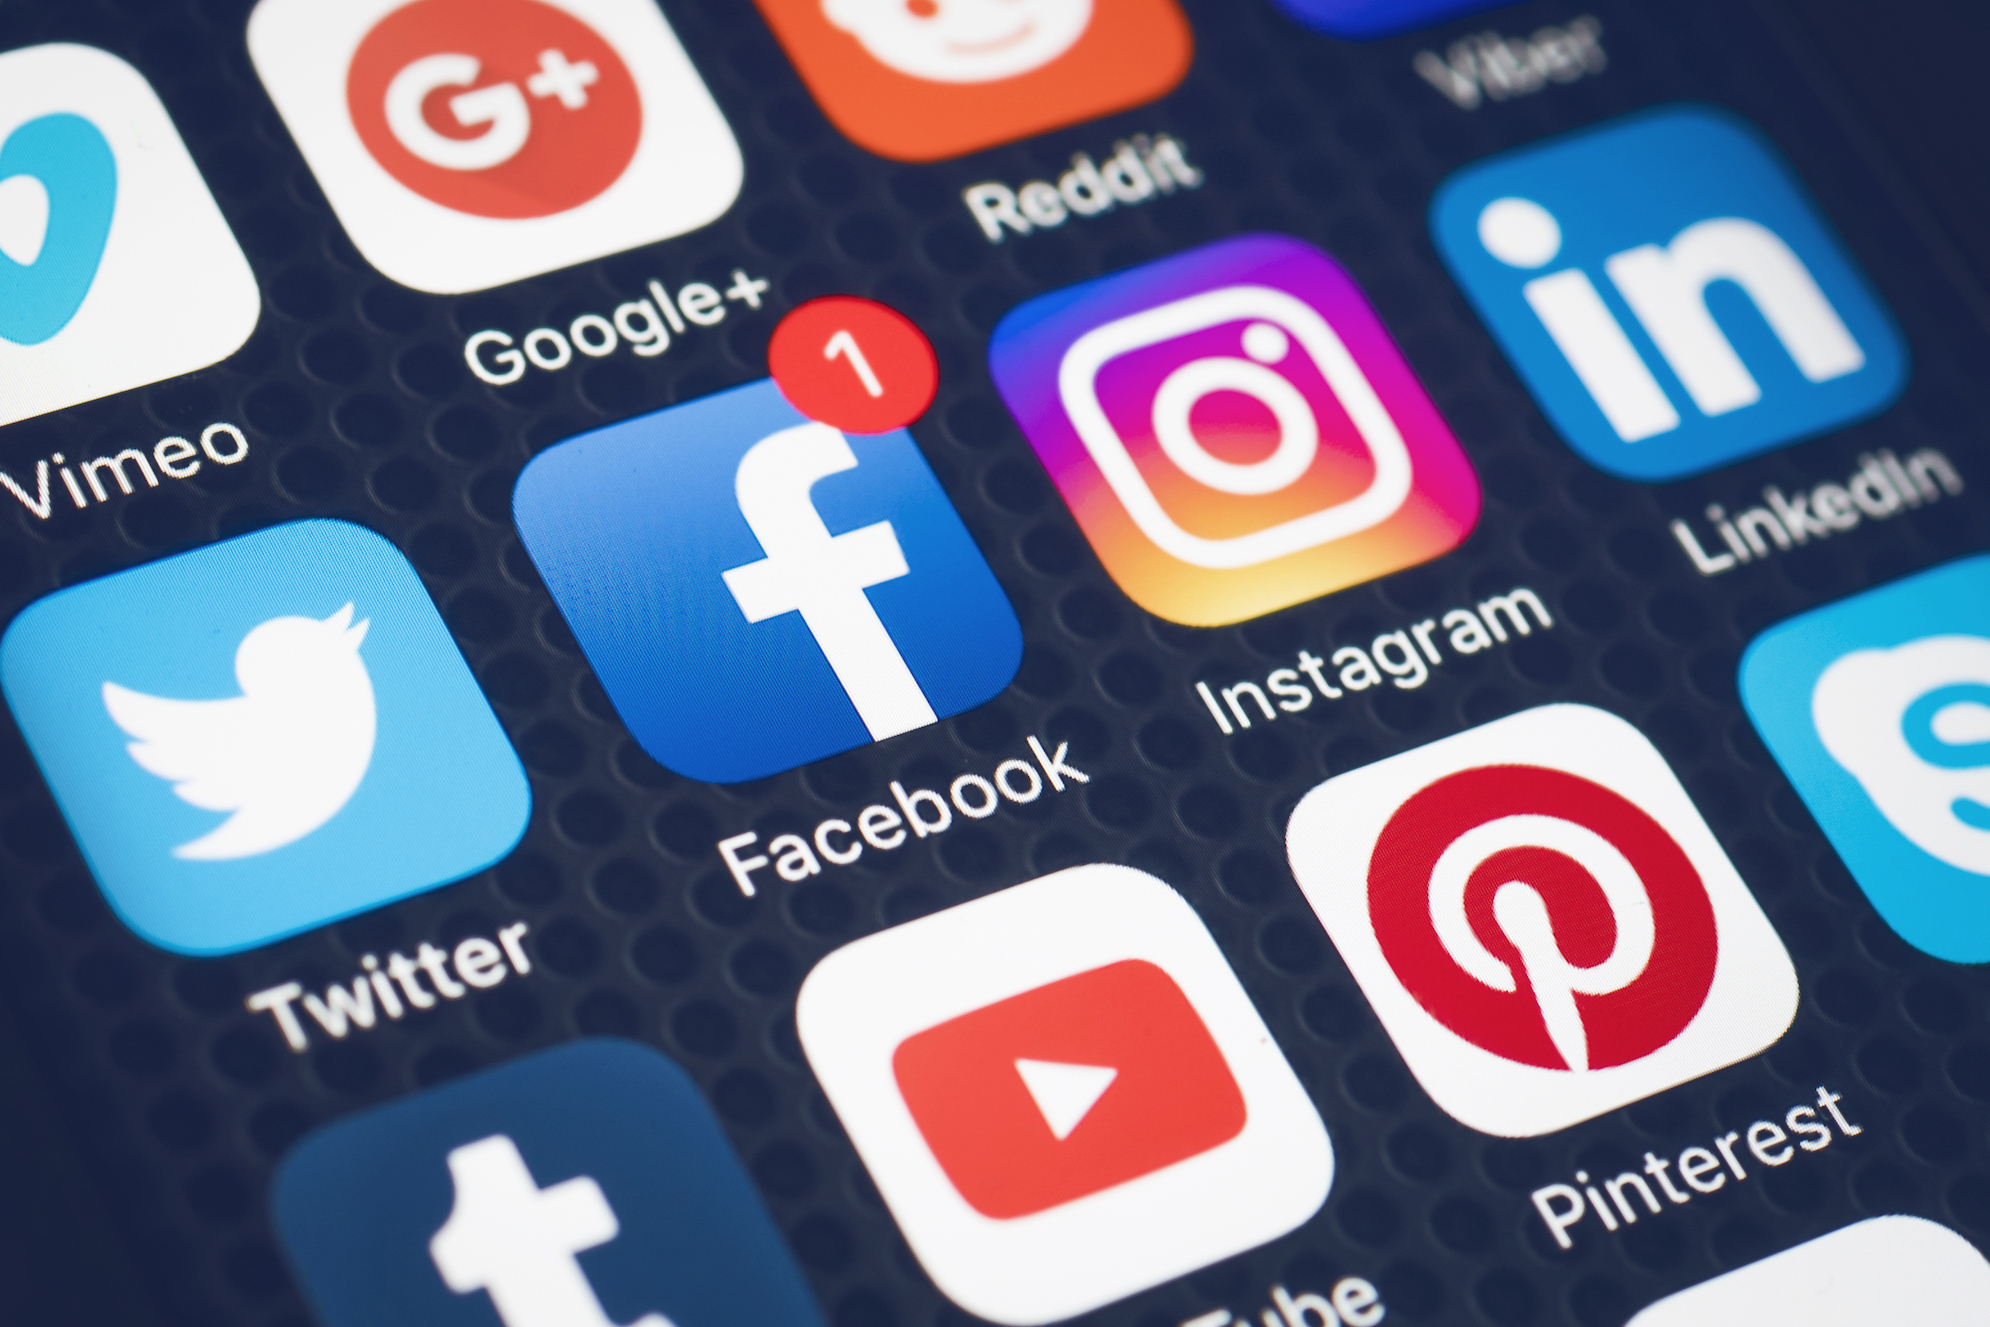 Researchers at Drexel University have found that social media is making it easier for people to discuss painful experiences.